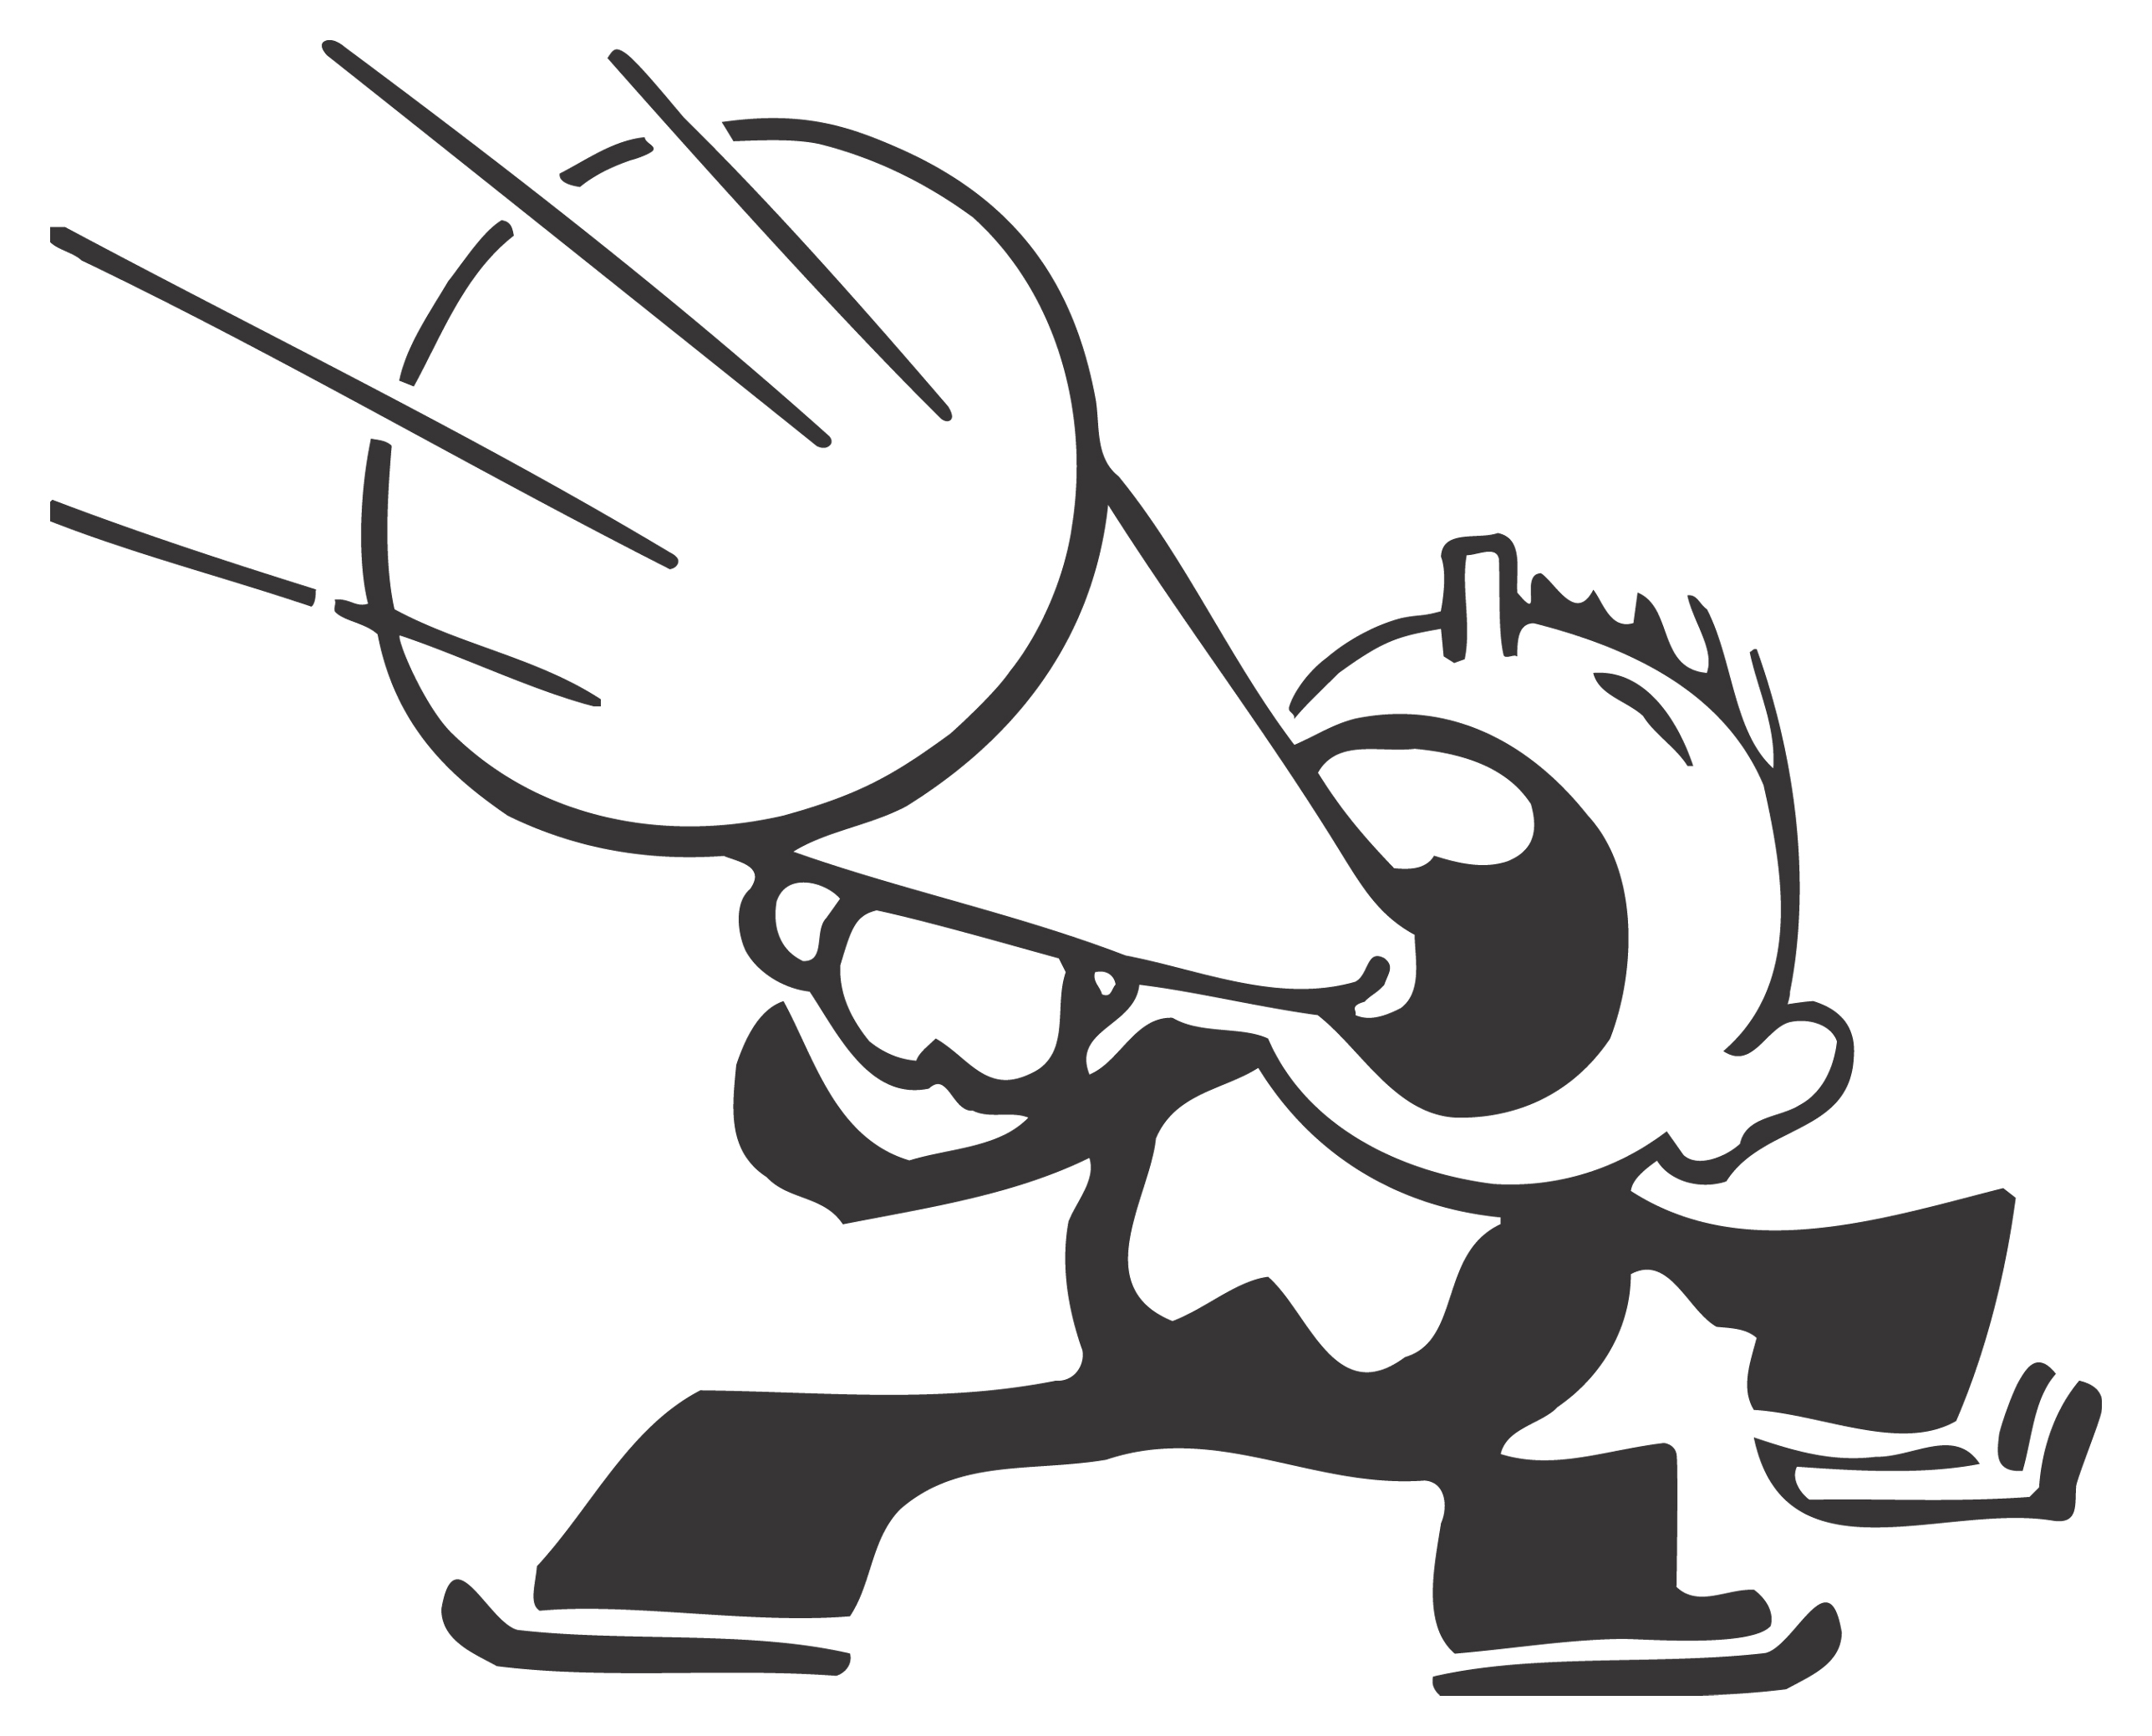 Noise Pollution Clipart Black And White 4 Clipart Station